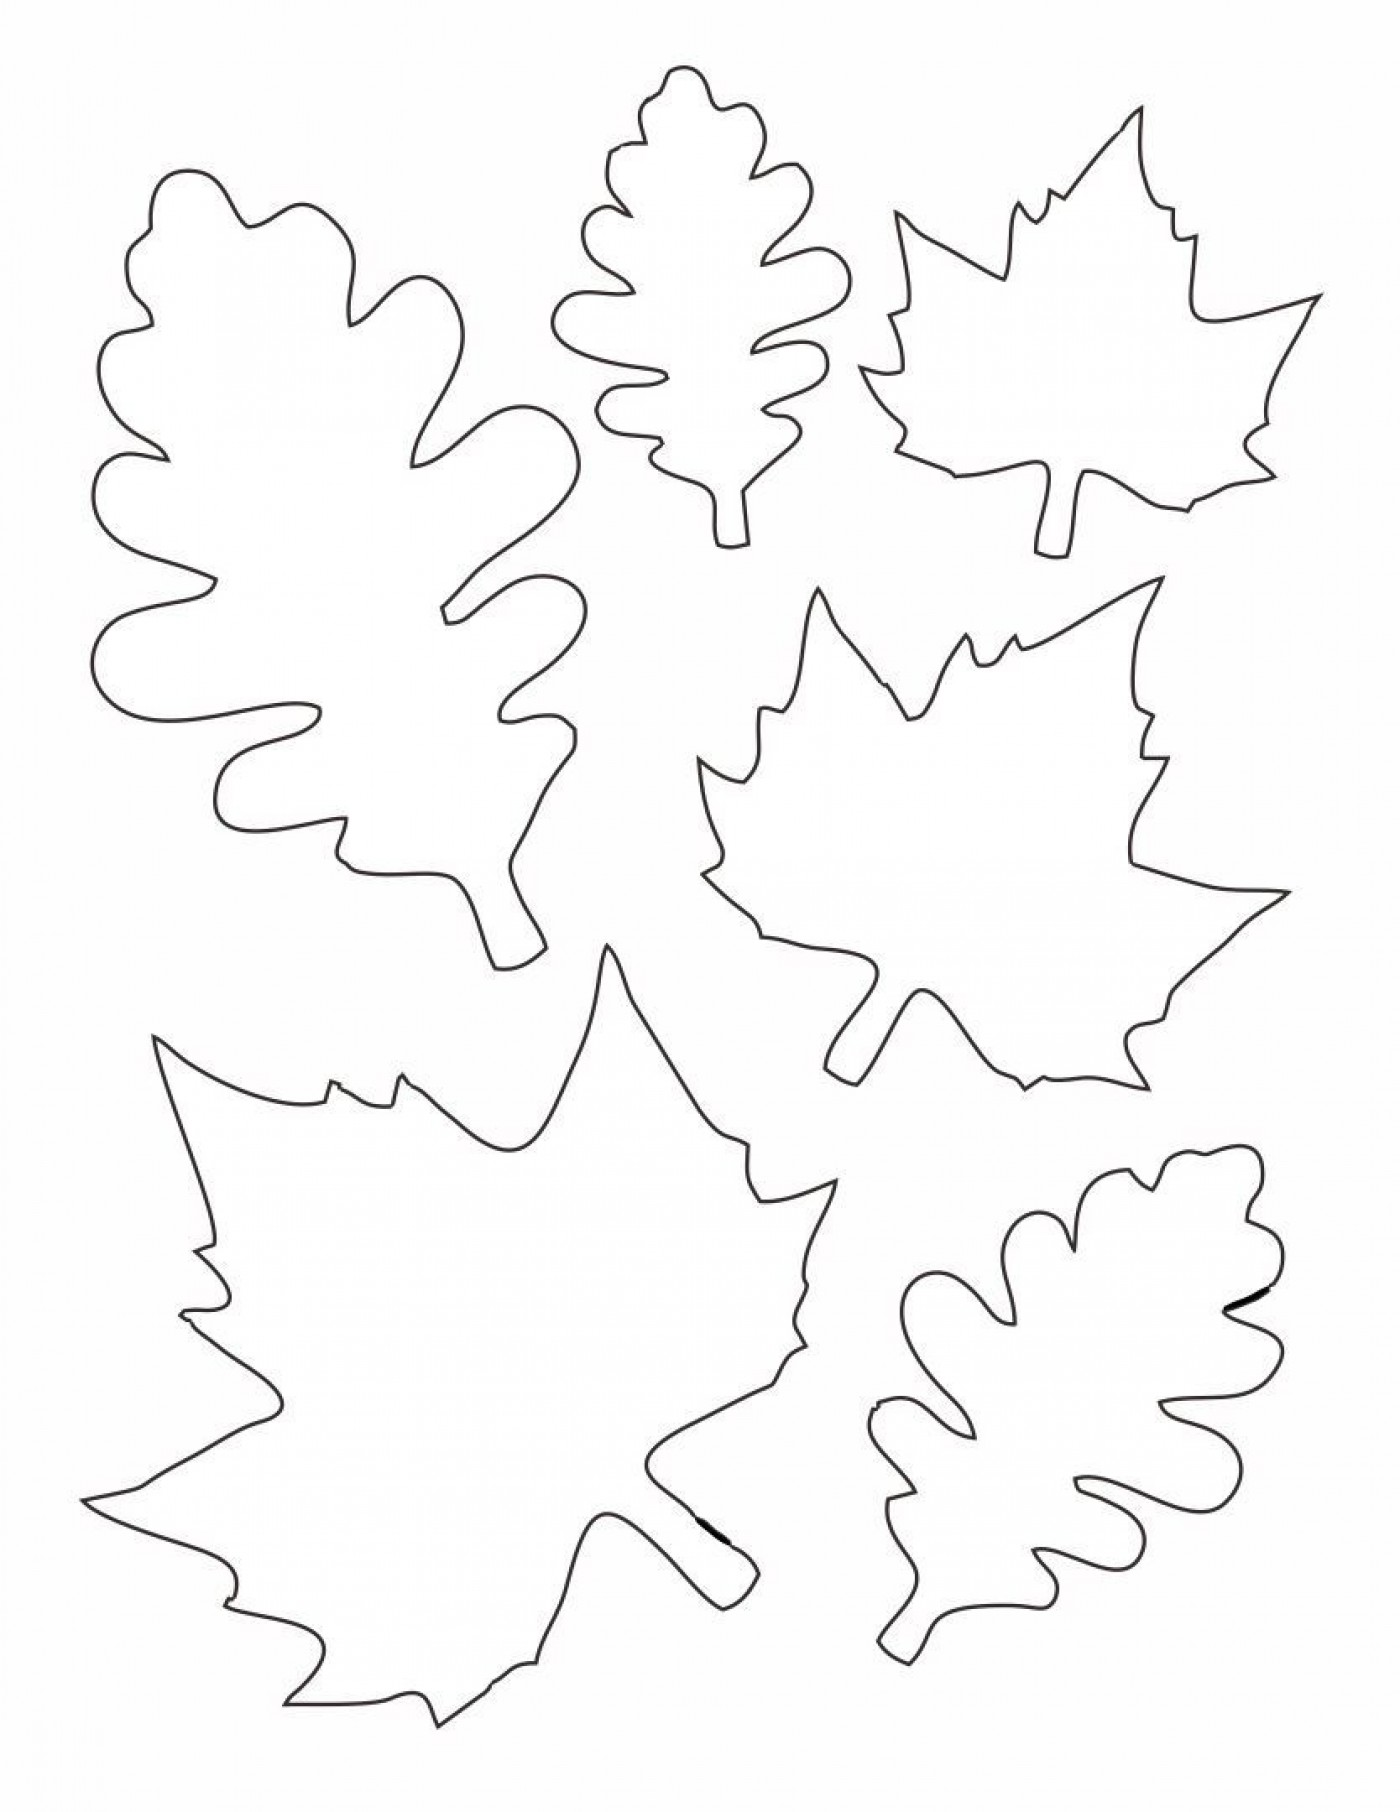 010 Unique Blank Leaf Template With Line Inspiration  Printable1400